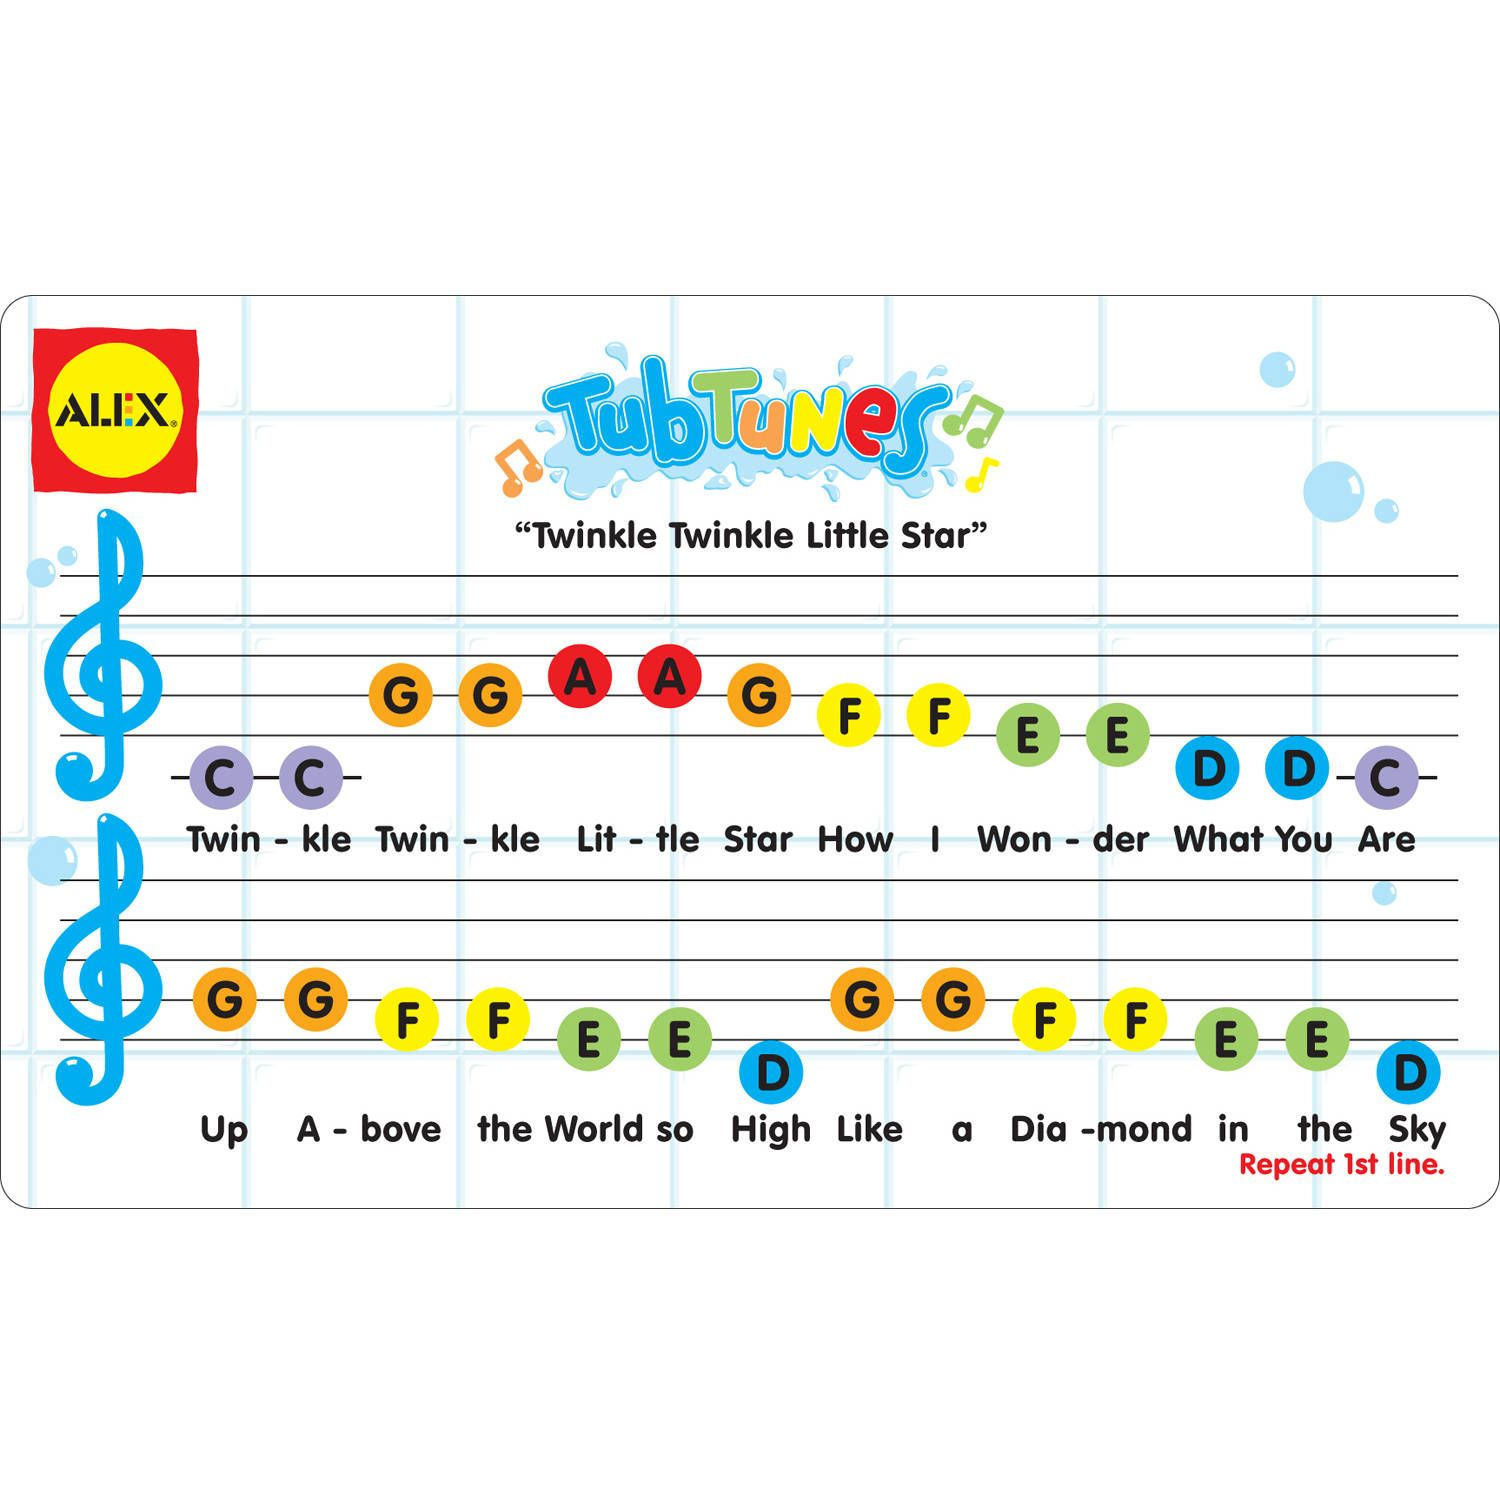 Image Result For Best Xylophone Songs Music Lessons For Kids Preschool Music Music For Kids